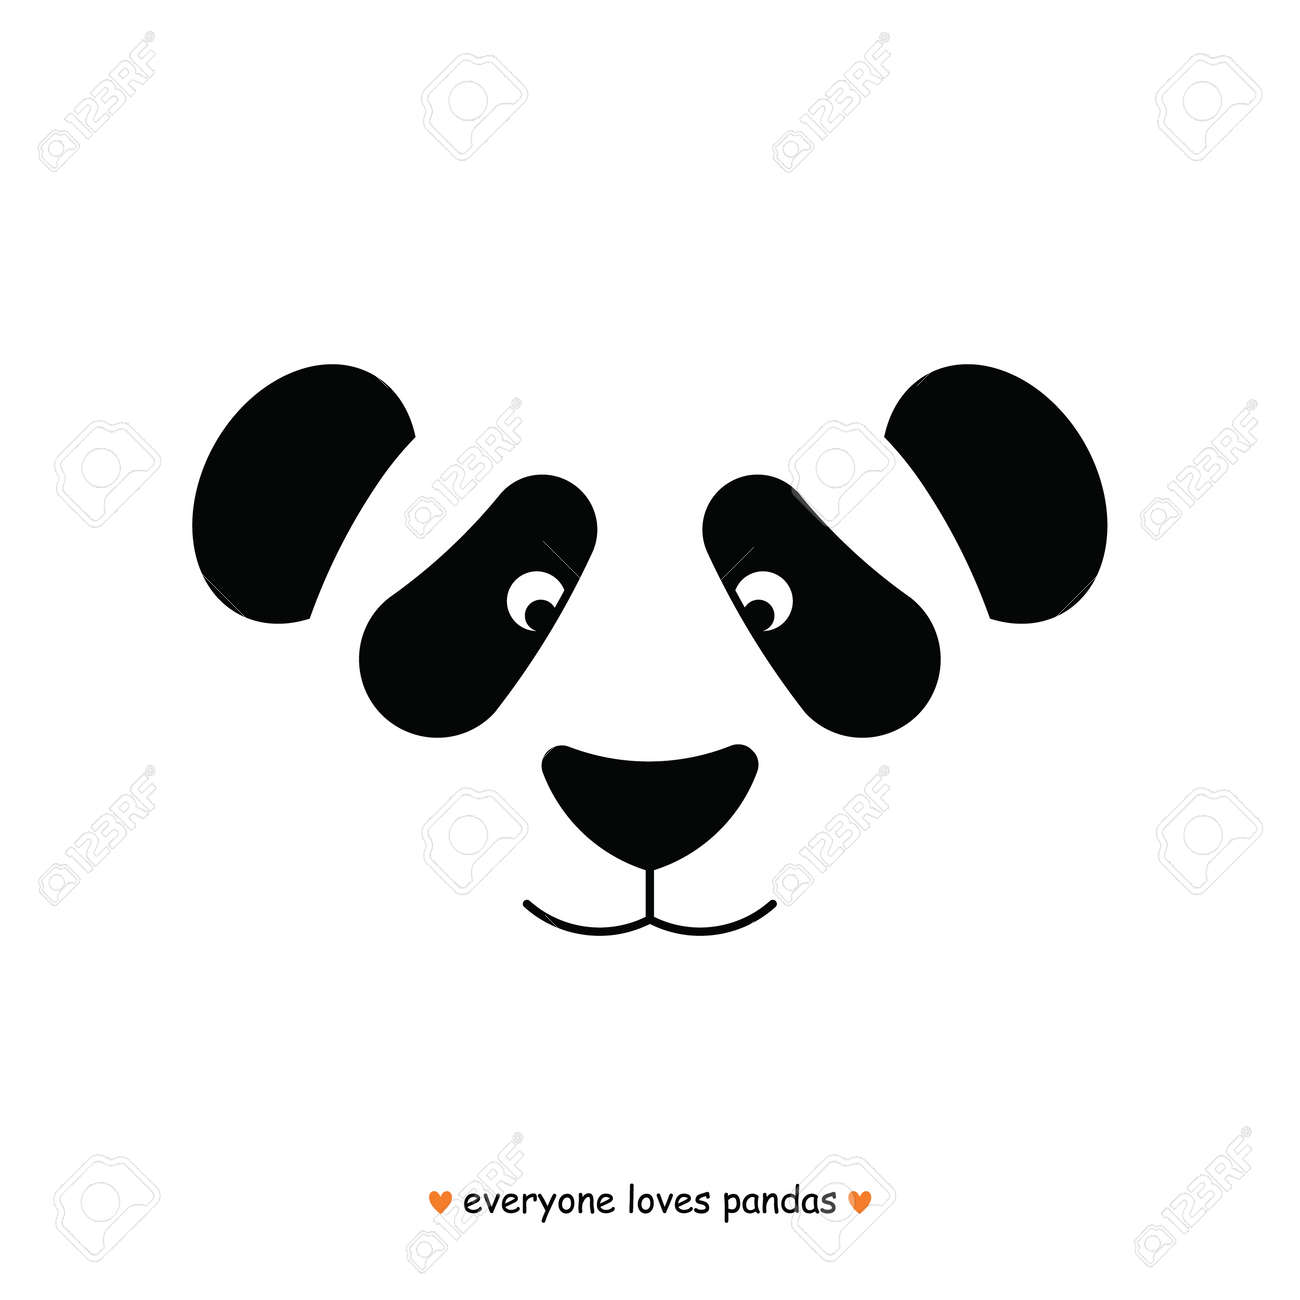 simple image of panda face design template stock vector 53170740